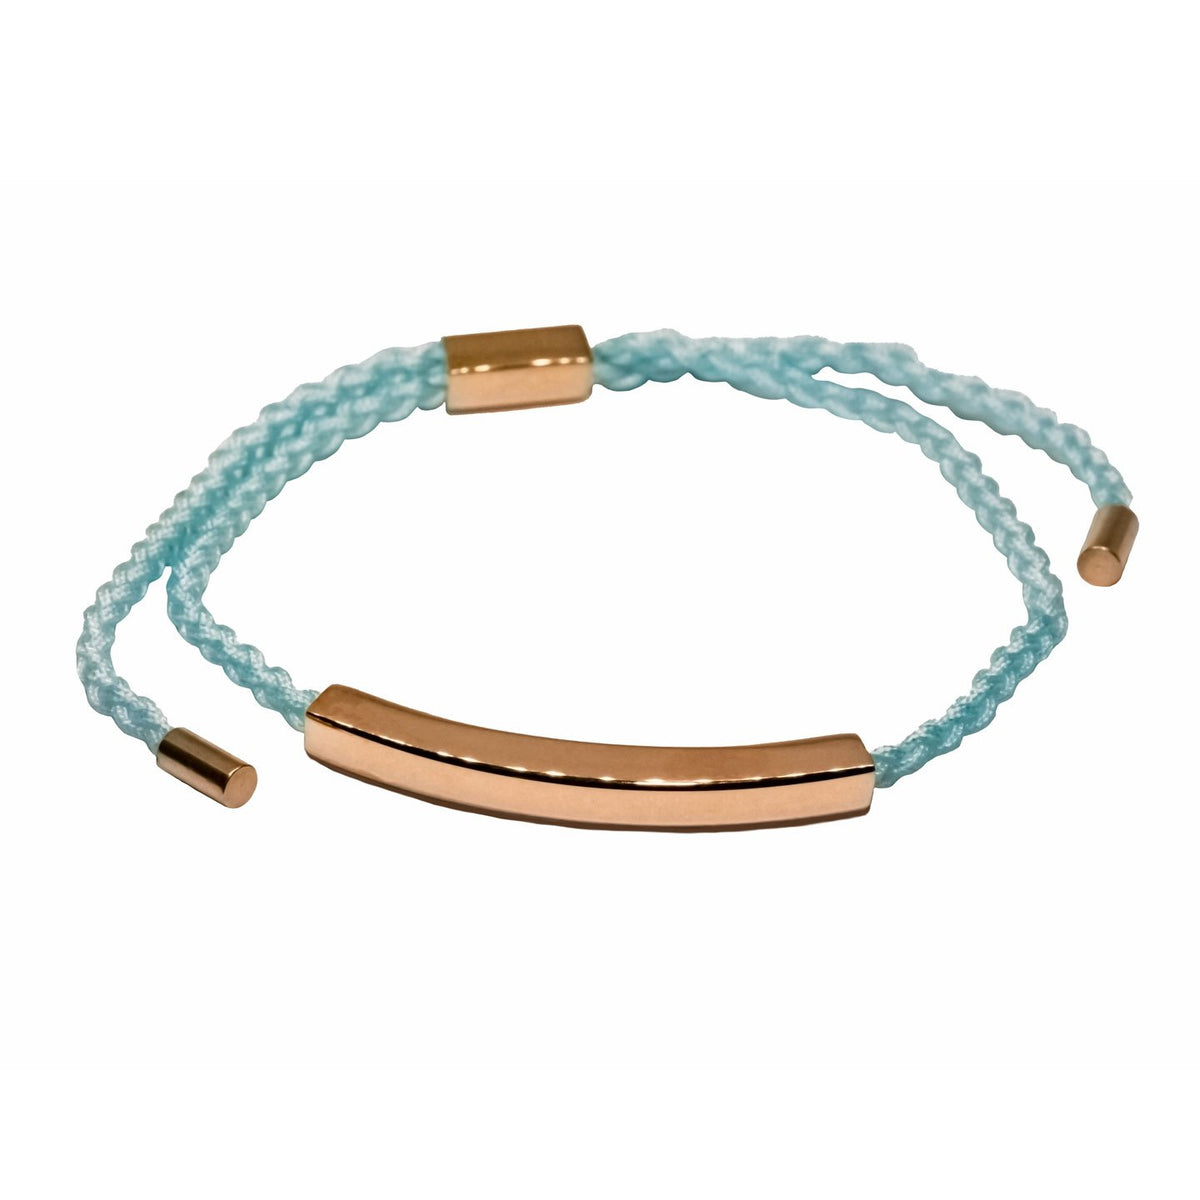 Blue cord bracelet with rose gold filled bar